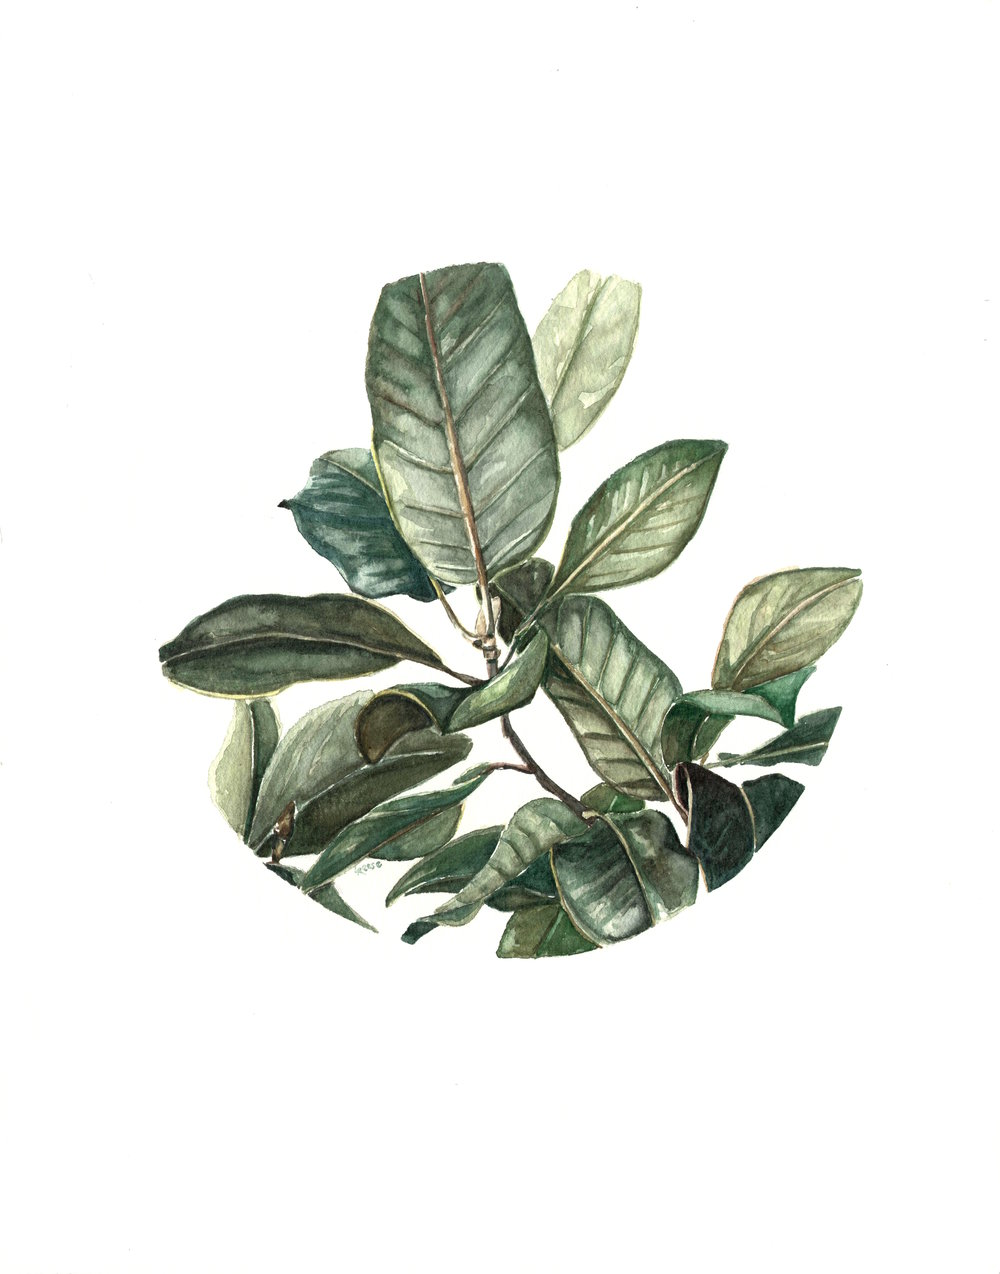 Magnolia Leaves.jpg